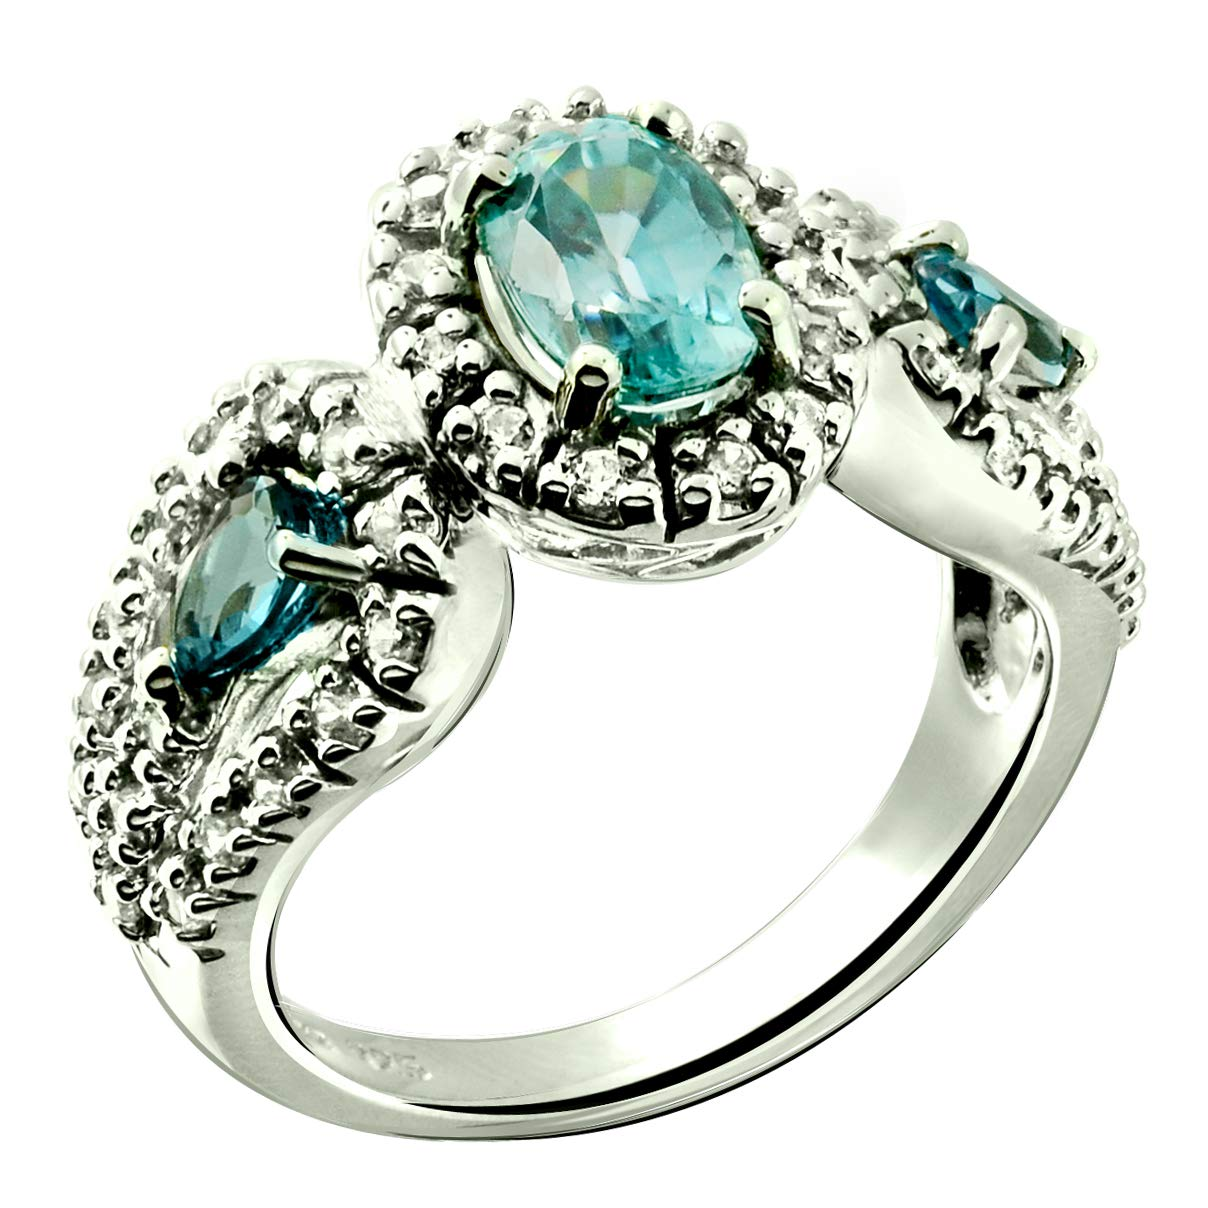 RB Gems Sterling Silver 925 Ring Genuine Gemstone Oval 7x5 mm with Rhodium-Plated Finish, 3-Stone-Style